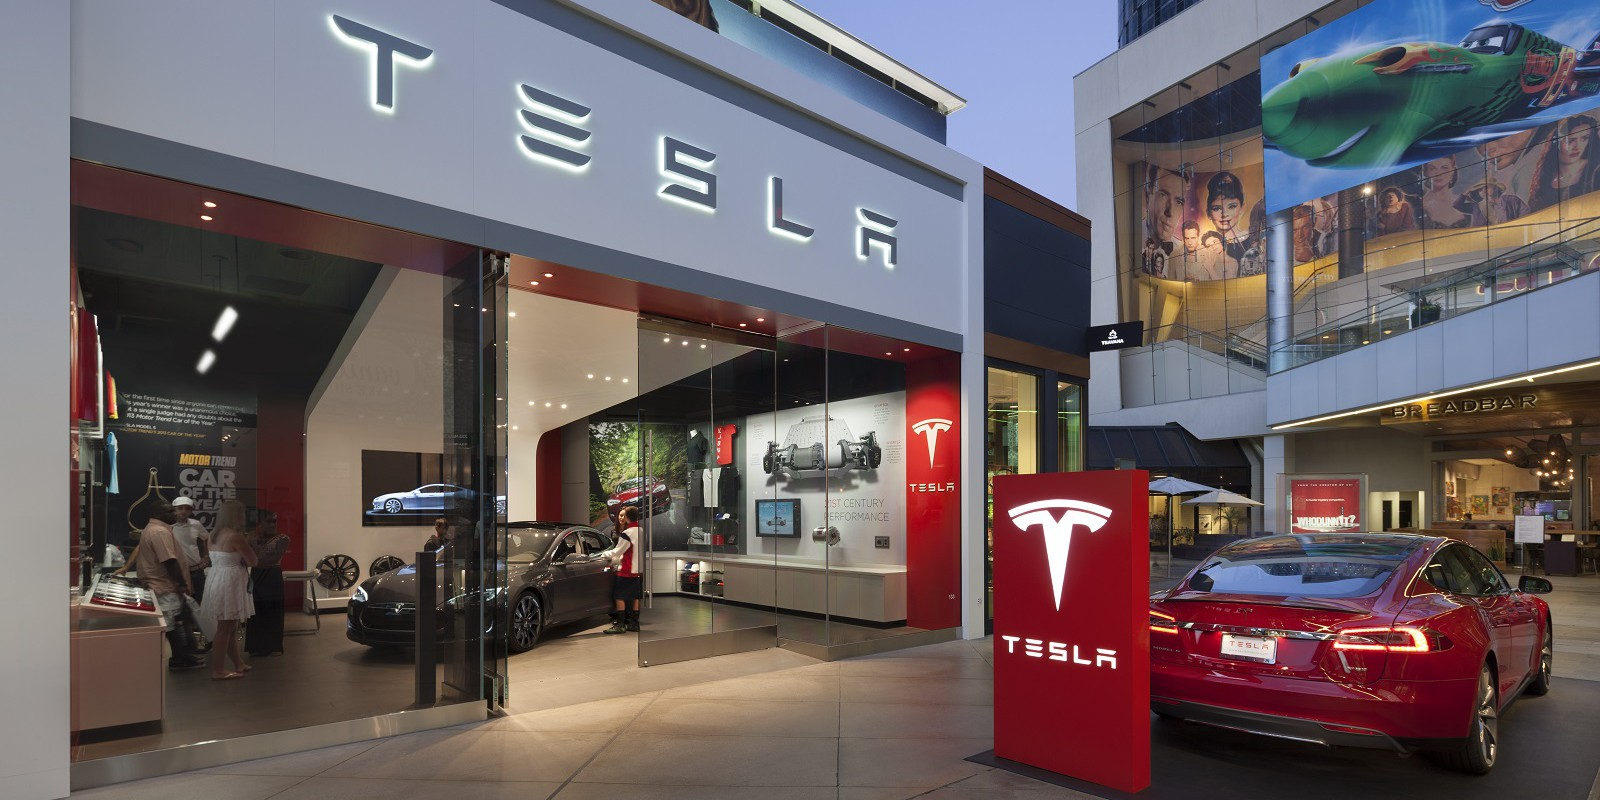 tesla-store-los-angeles-photo-misha-bruk-mbh-architects_100449434_h